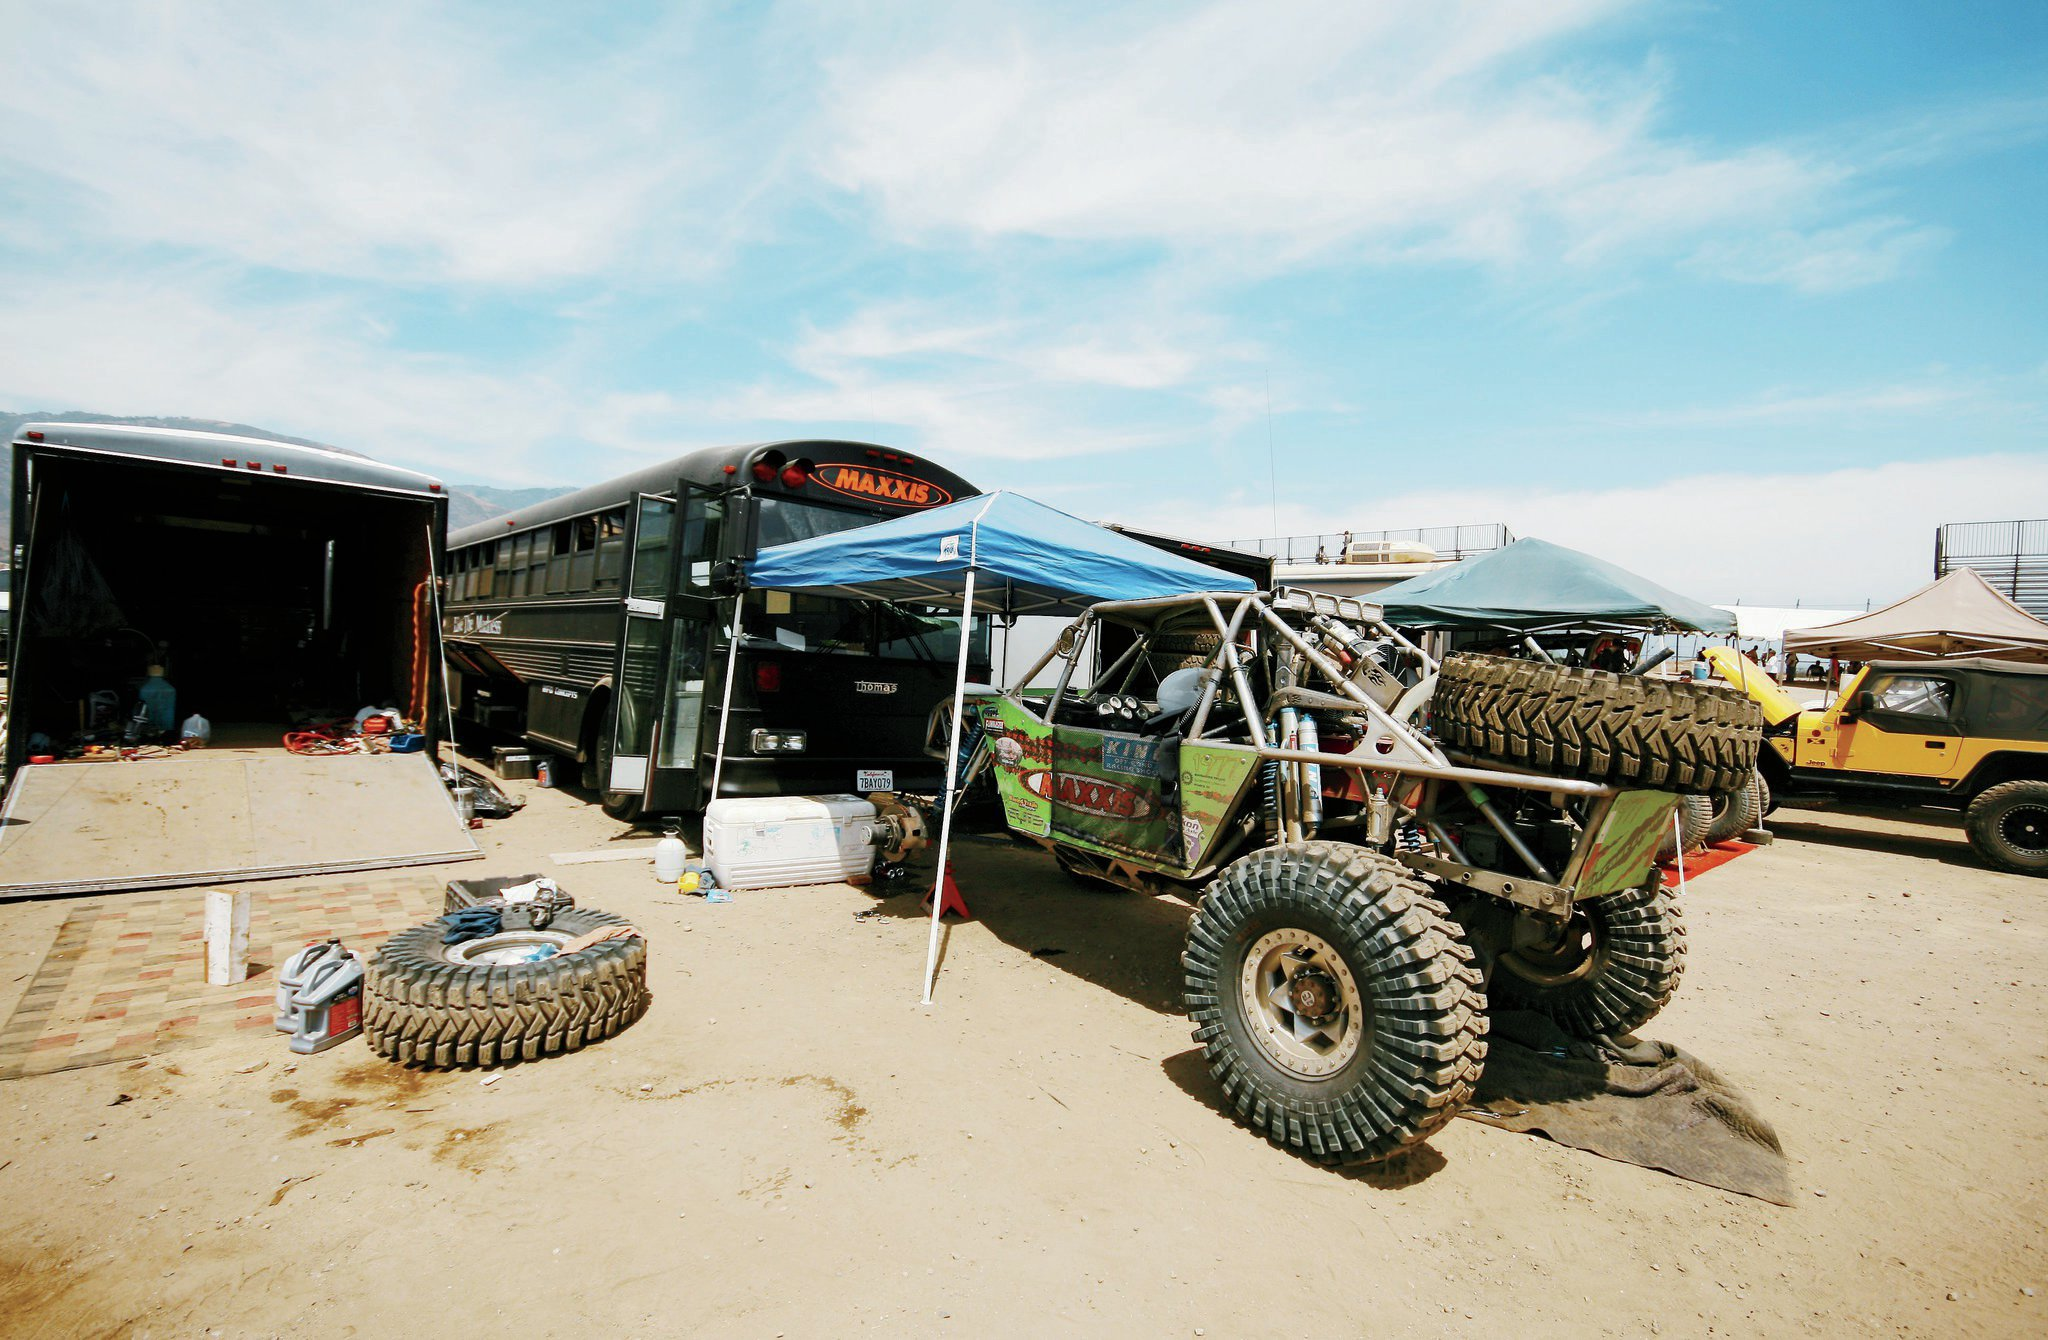 Access is excellent at Glen Helen. Spectators can roam the pits to get tips on vehicle setups and crib custom RV ideas.